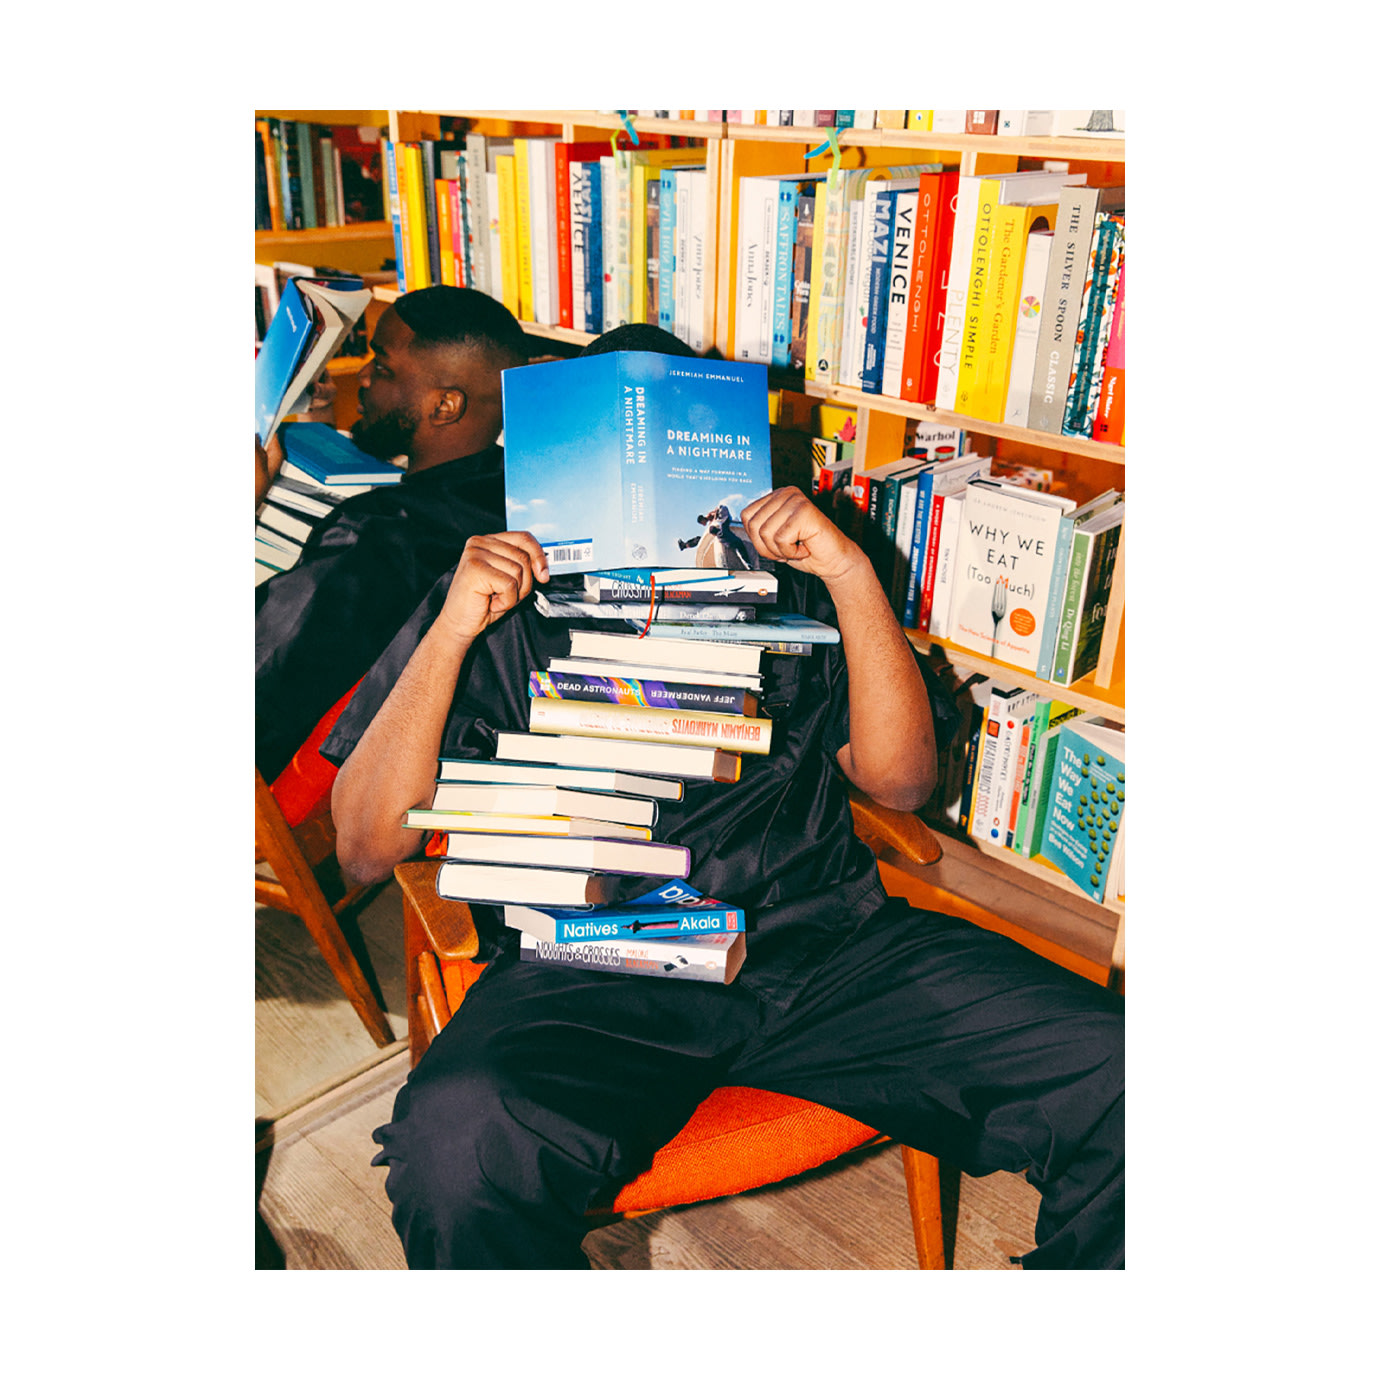 A man covered in a pile of books next to a yellow bookcase.